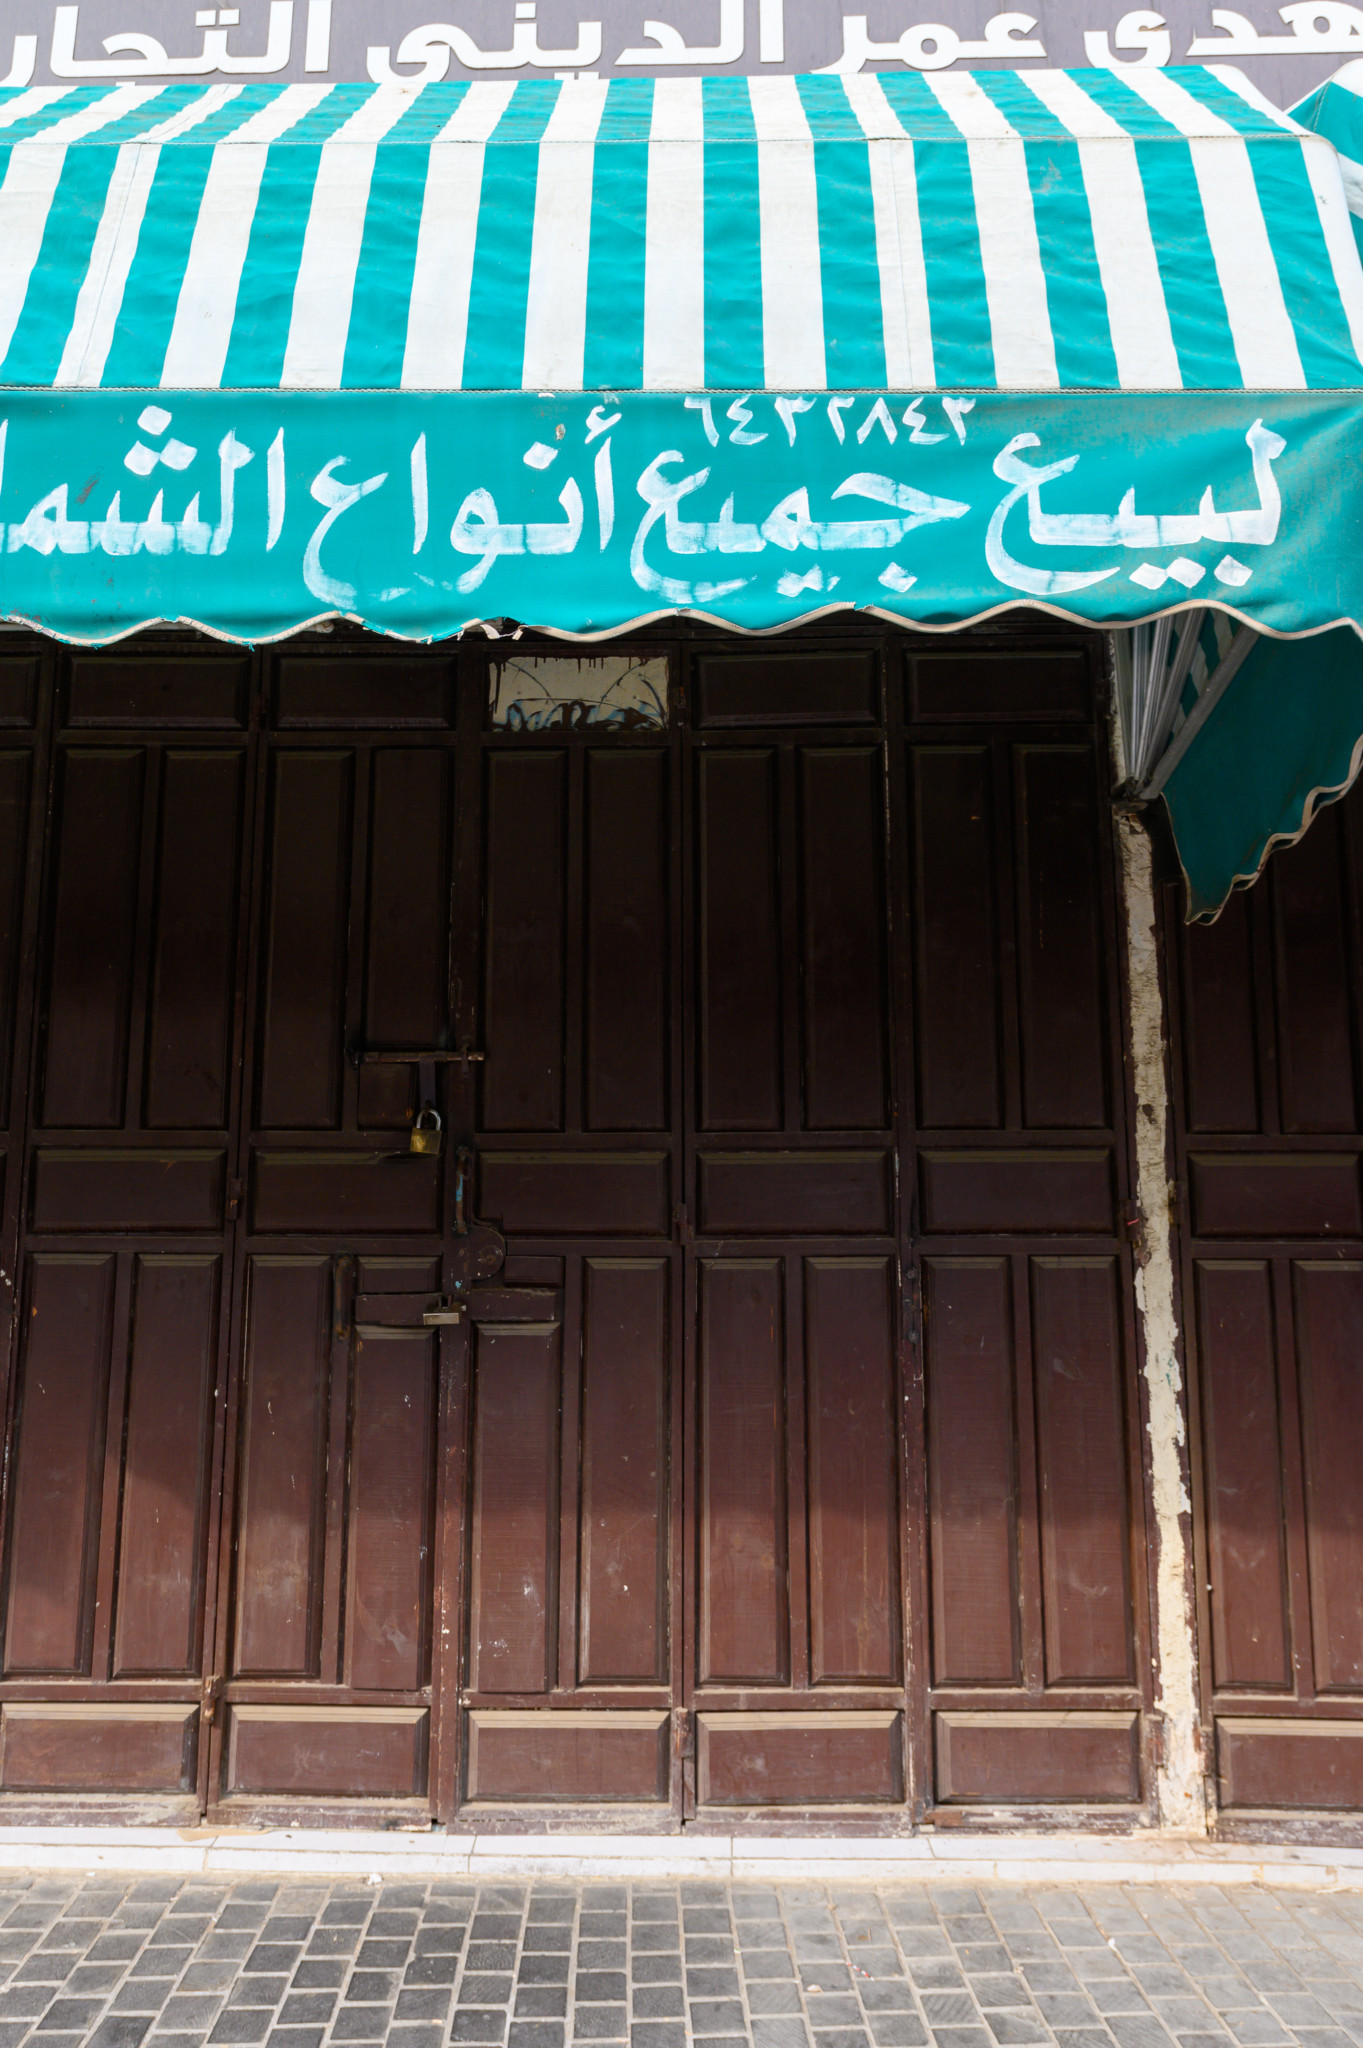 Shop im Souq in Jeddah in Saudi-Arabien